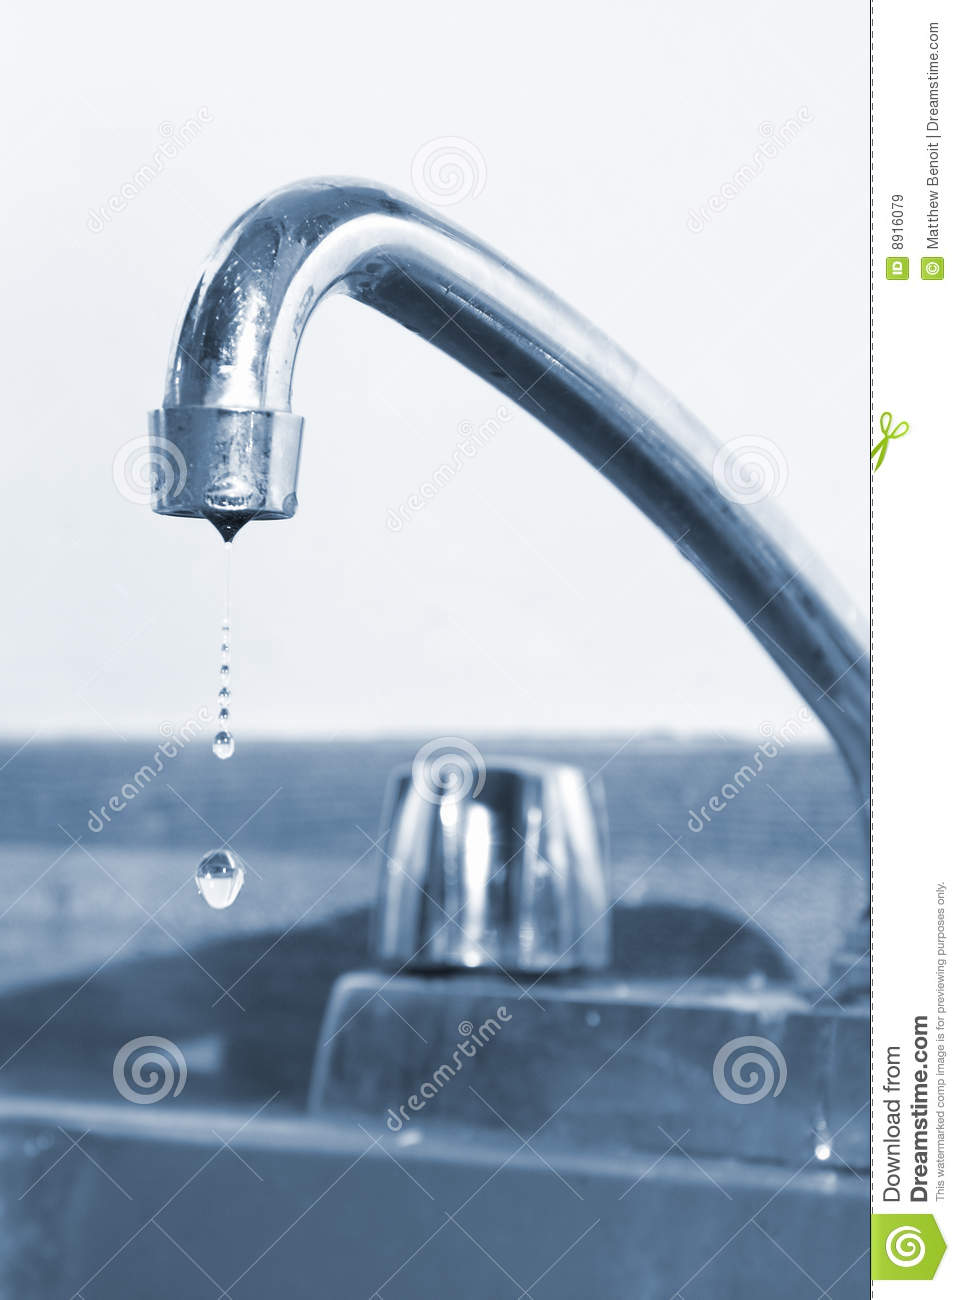 Dripping Faucet Royalty Free Stock Image